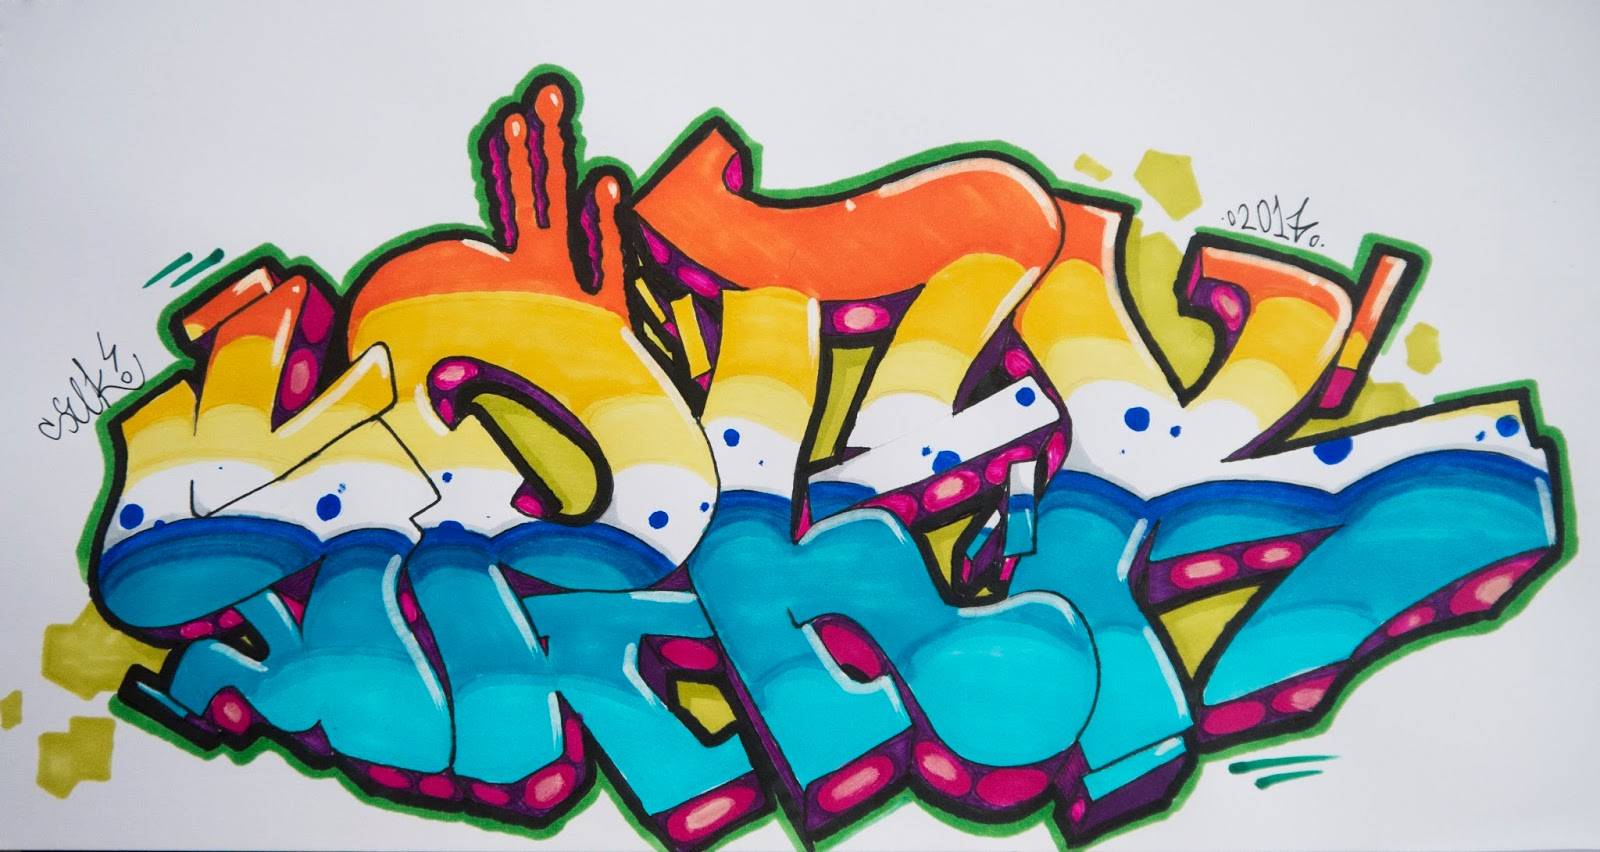 Blackbook Graffiti With Stylefile Markers